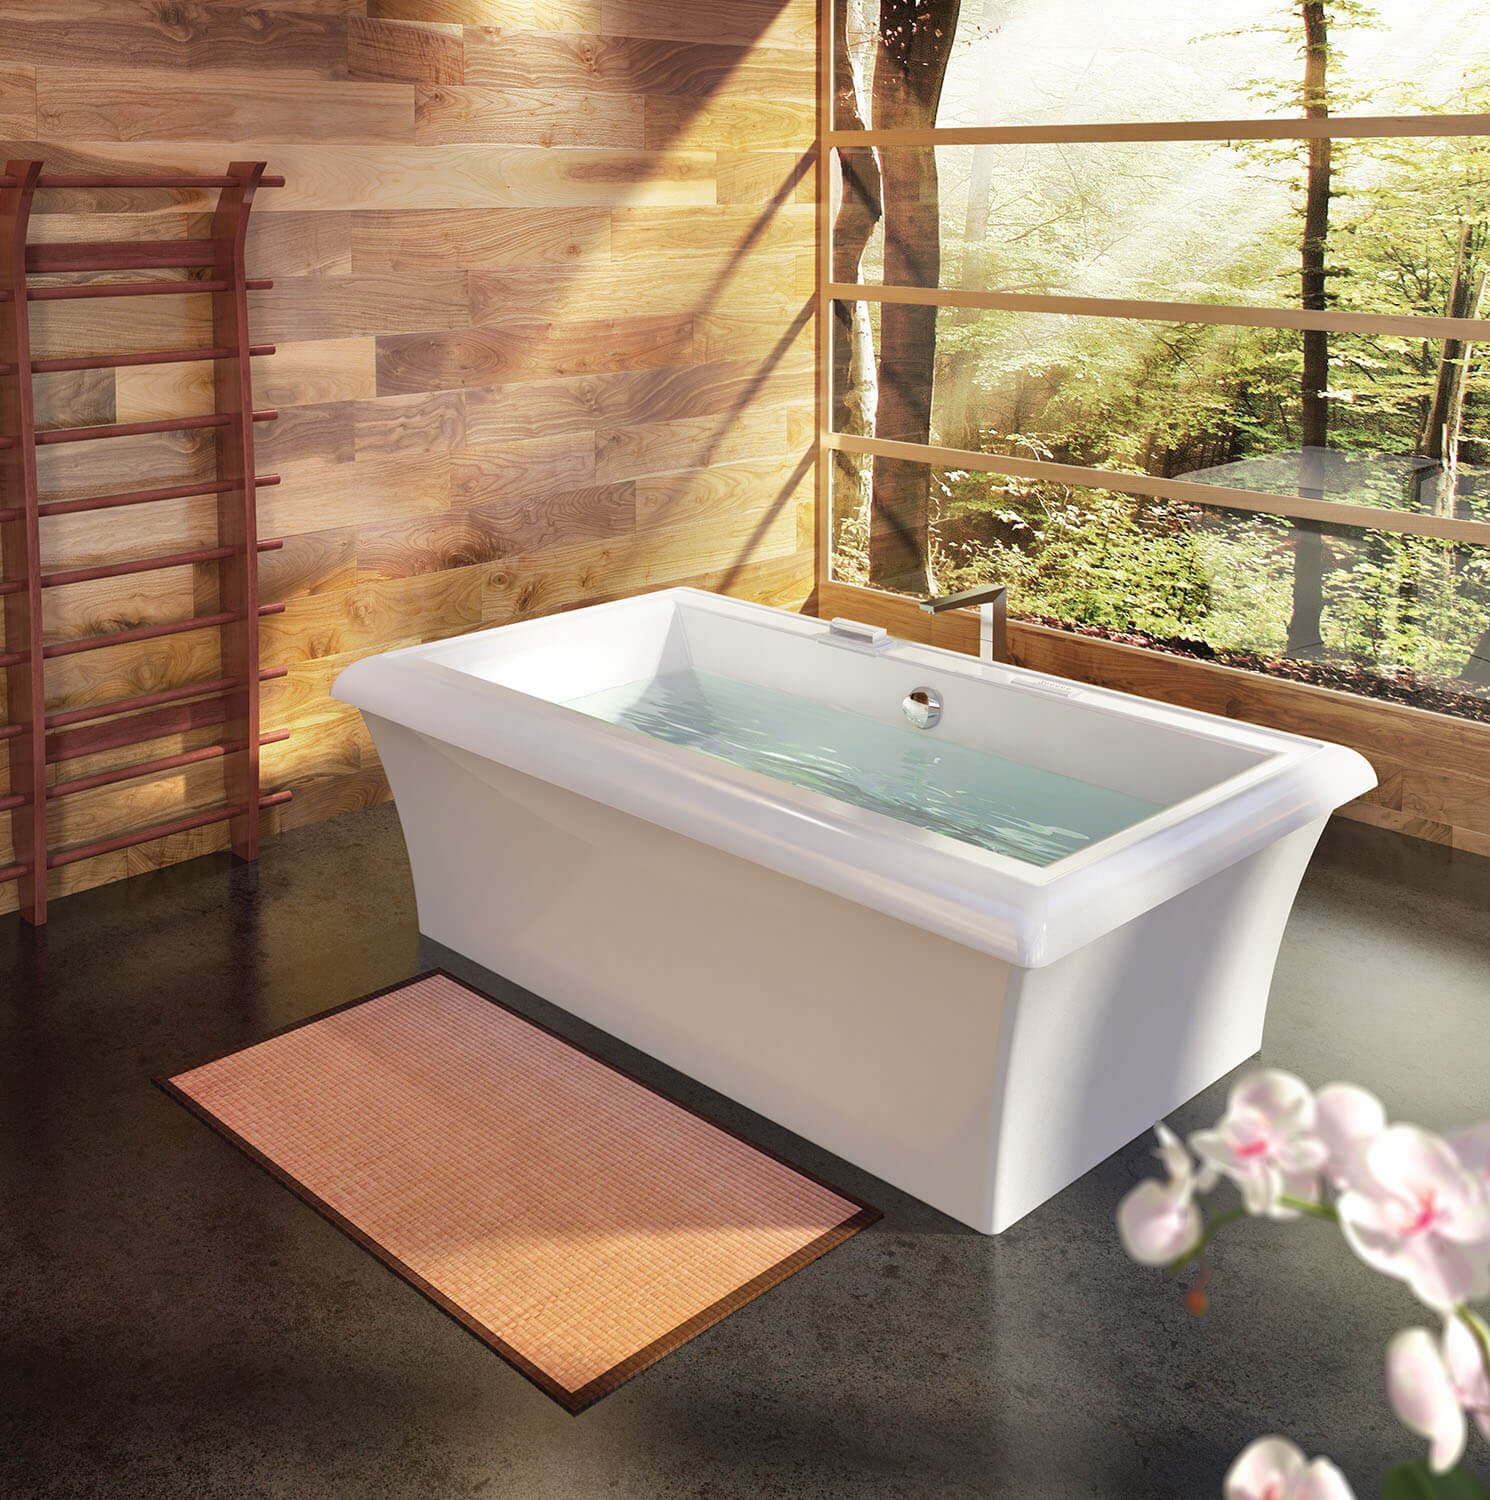 Bainultra Origami® 7242 Design Series two person large freestanding air jet bathtub for your modern bathroom